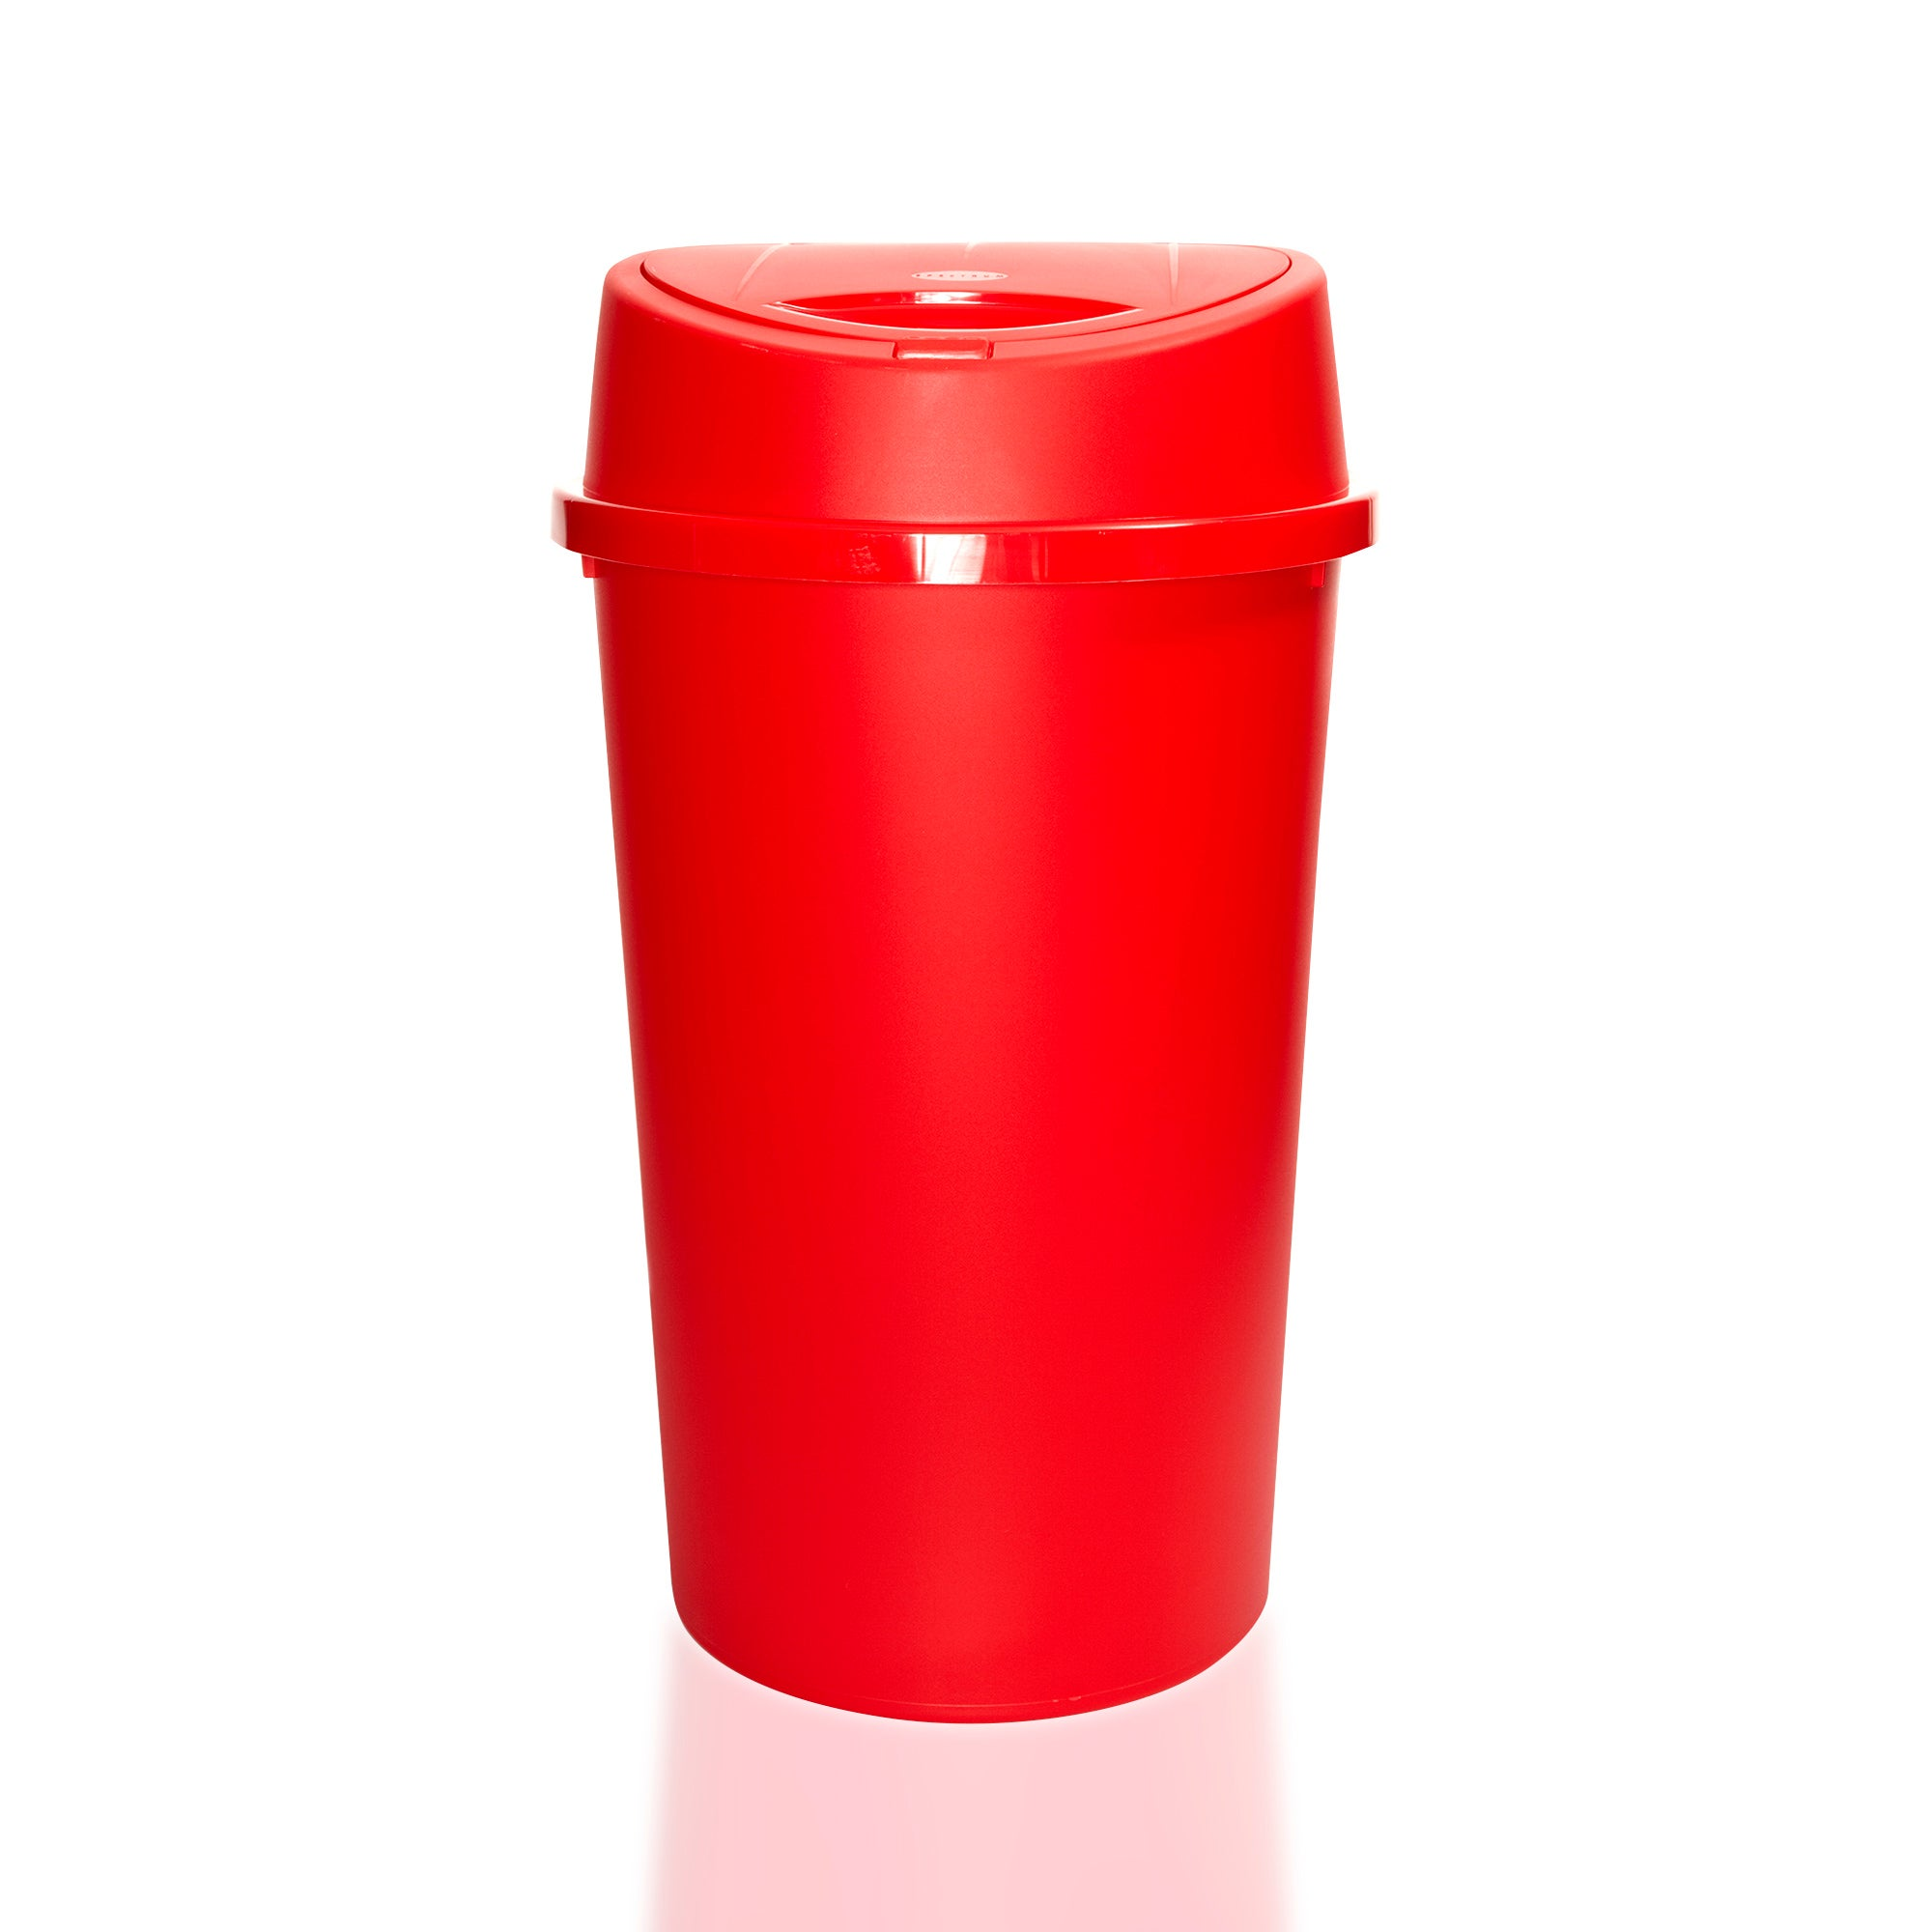 Red Spectrum Collection 45 Litre Touch Bin